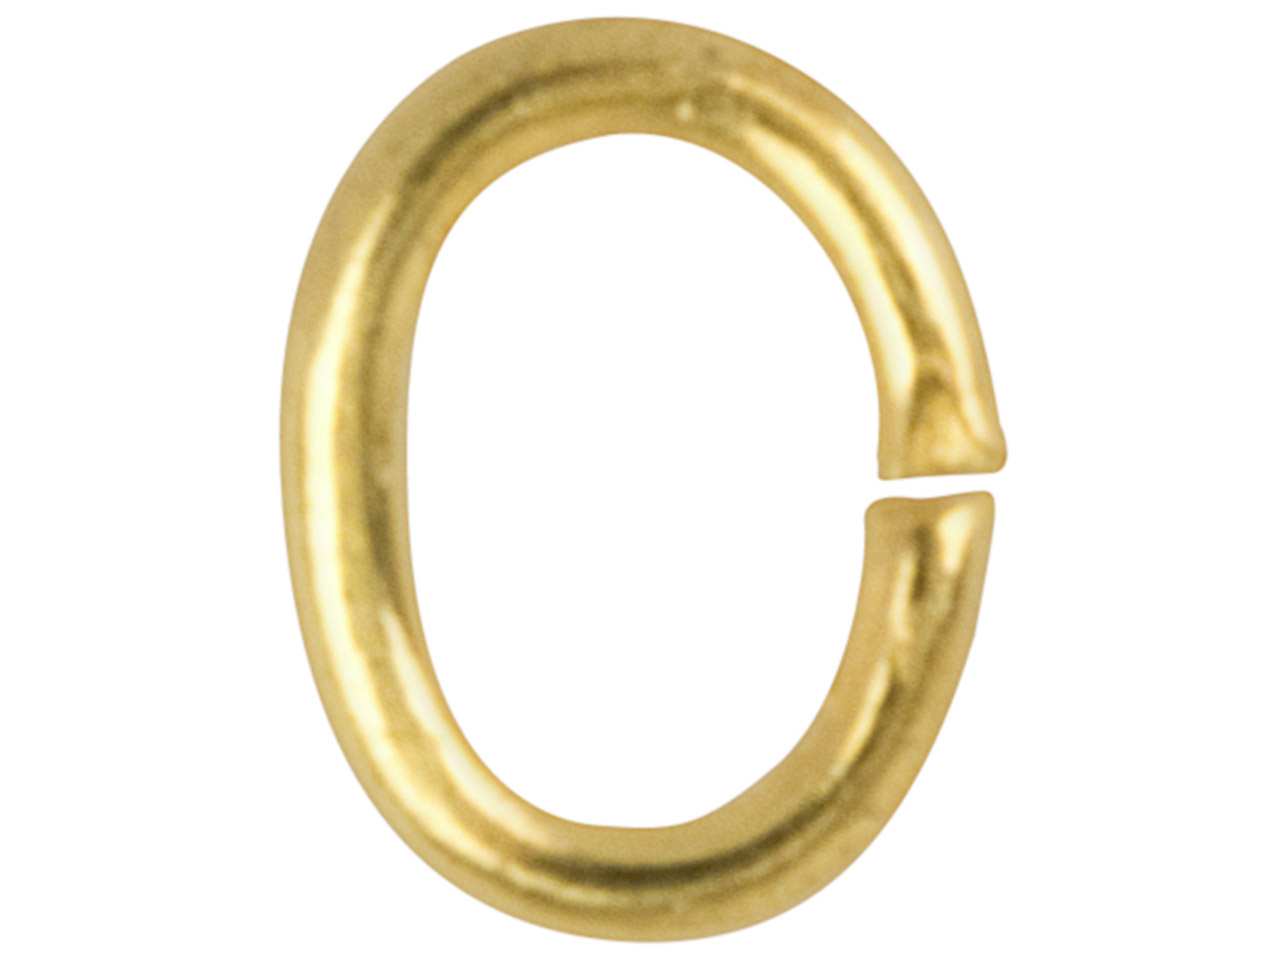 Gold Plated Jump Ring Oval 4mm     Pack of 100, 4mm X 3mm